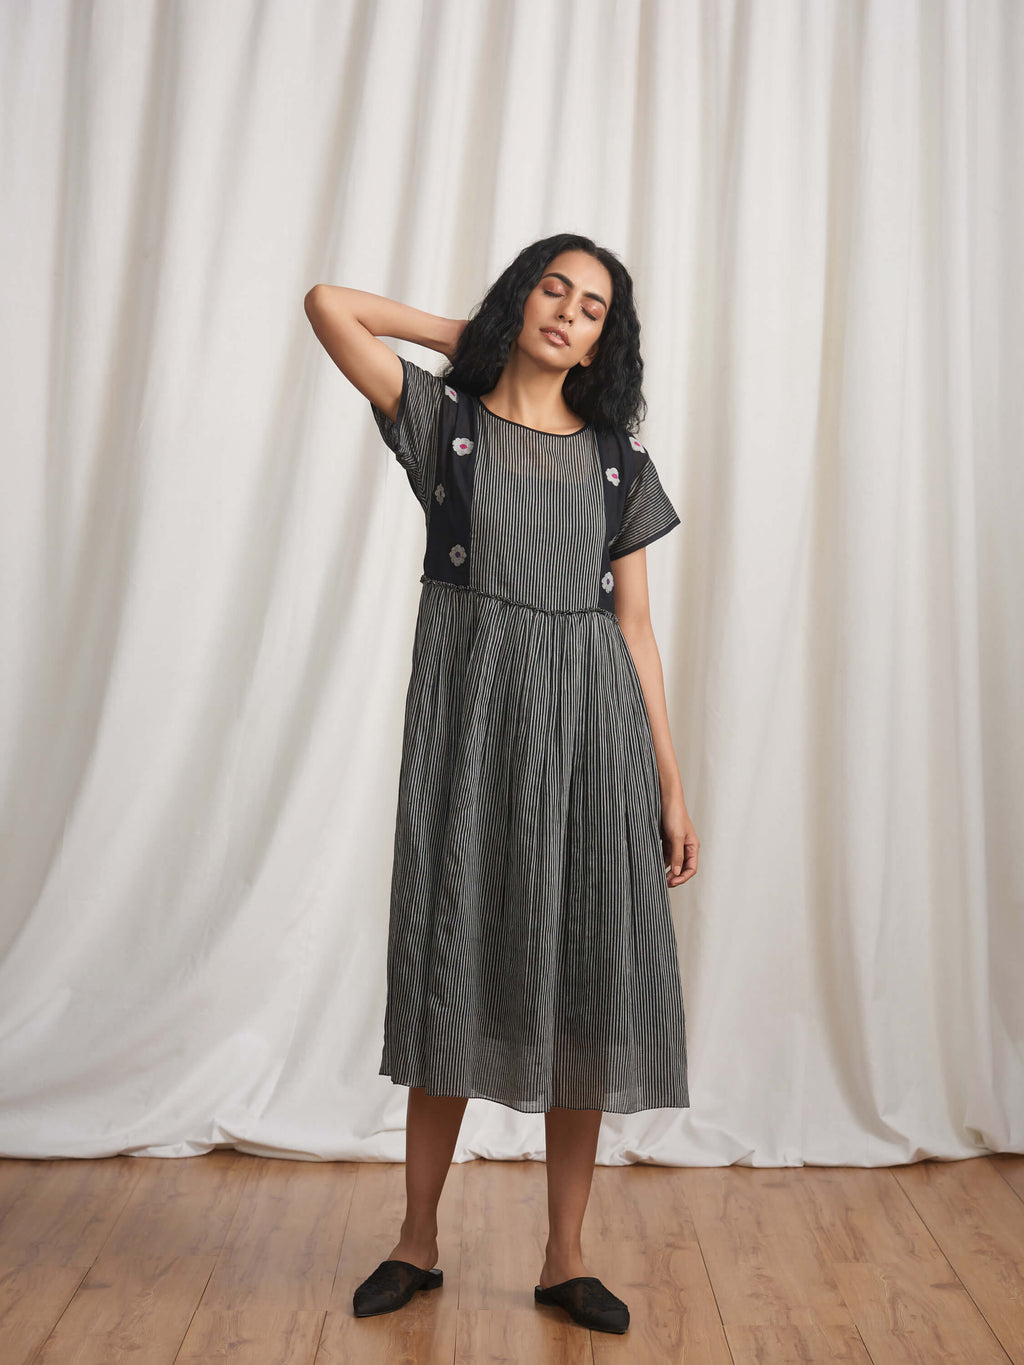 Shadow Fall Midi Dress - BunaStudio